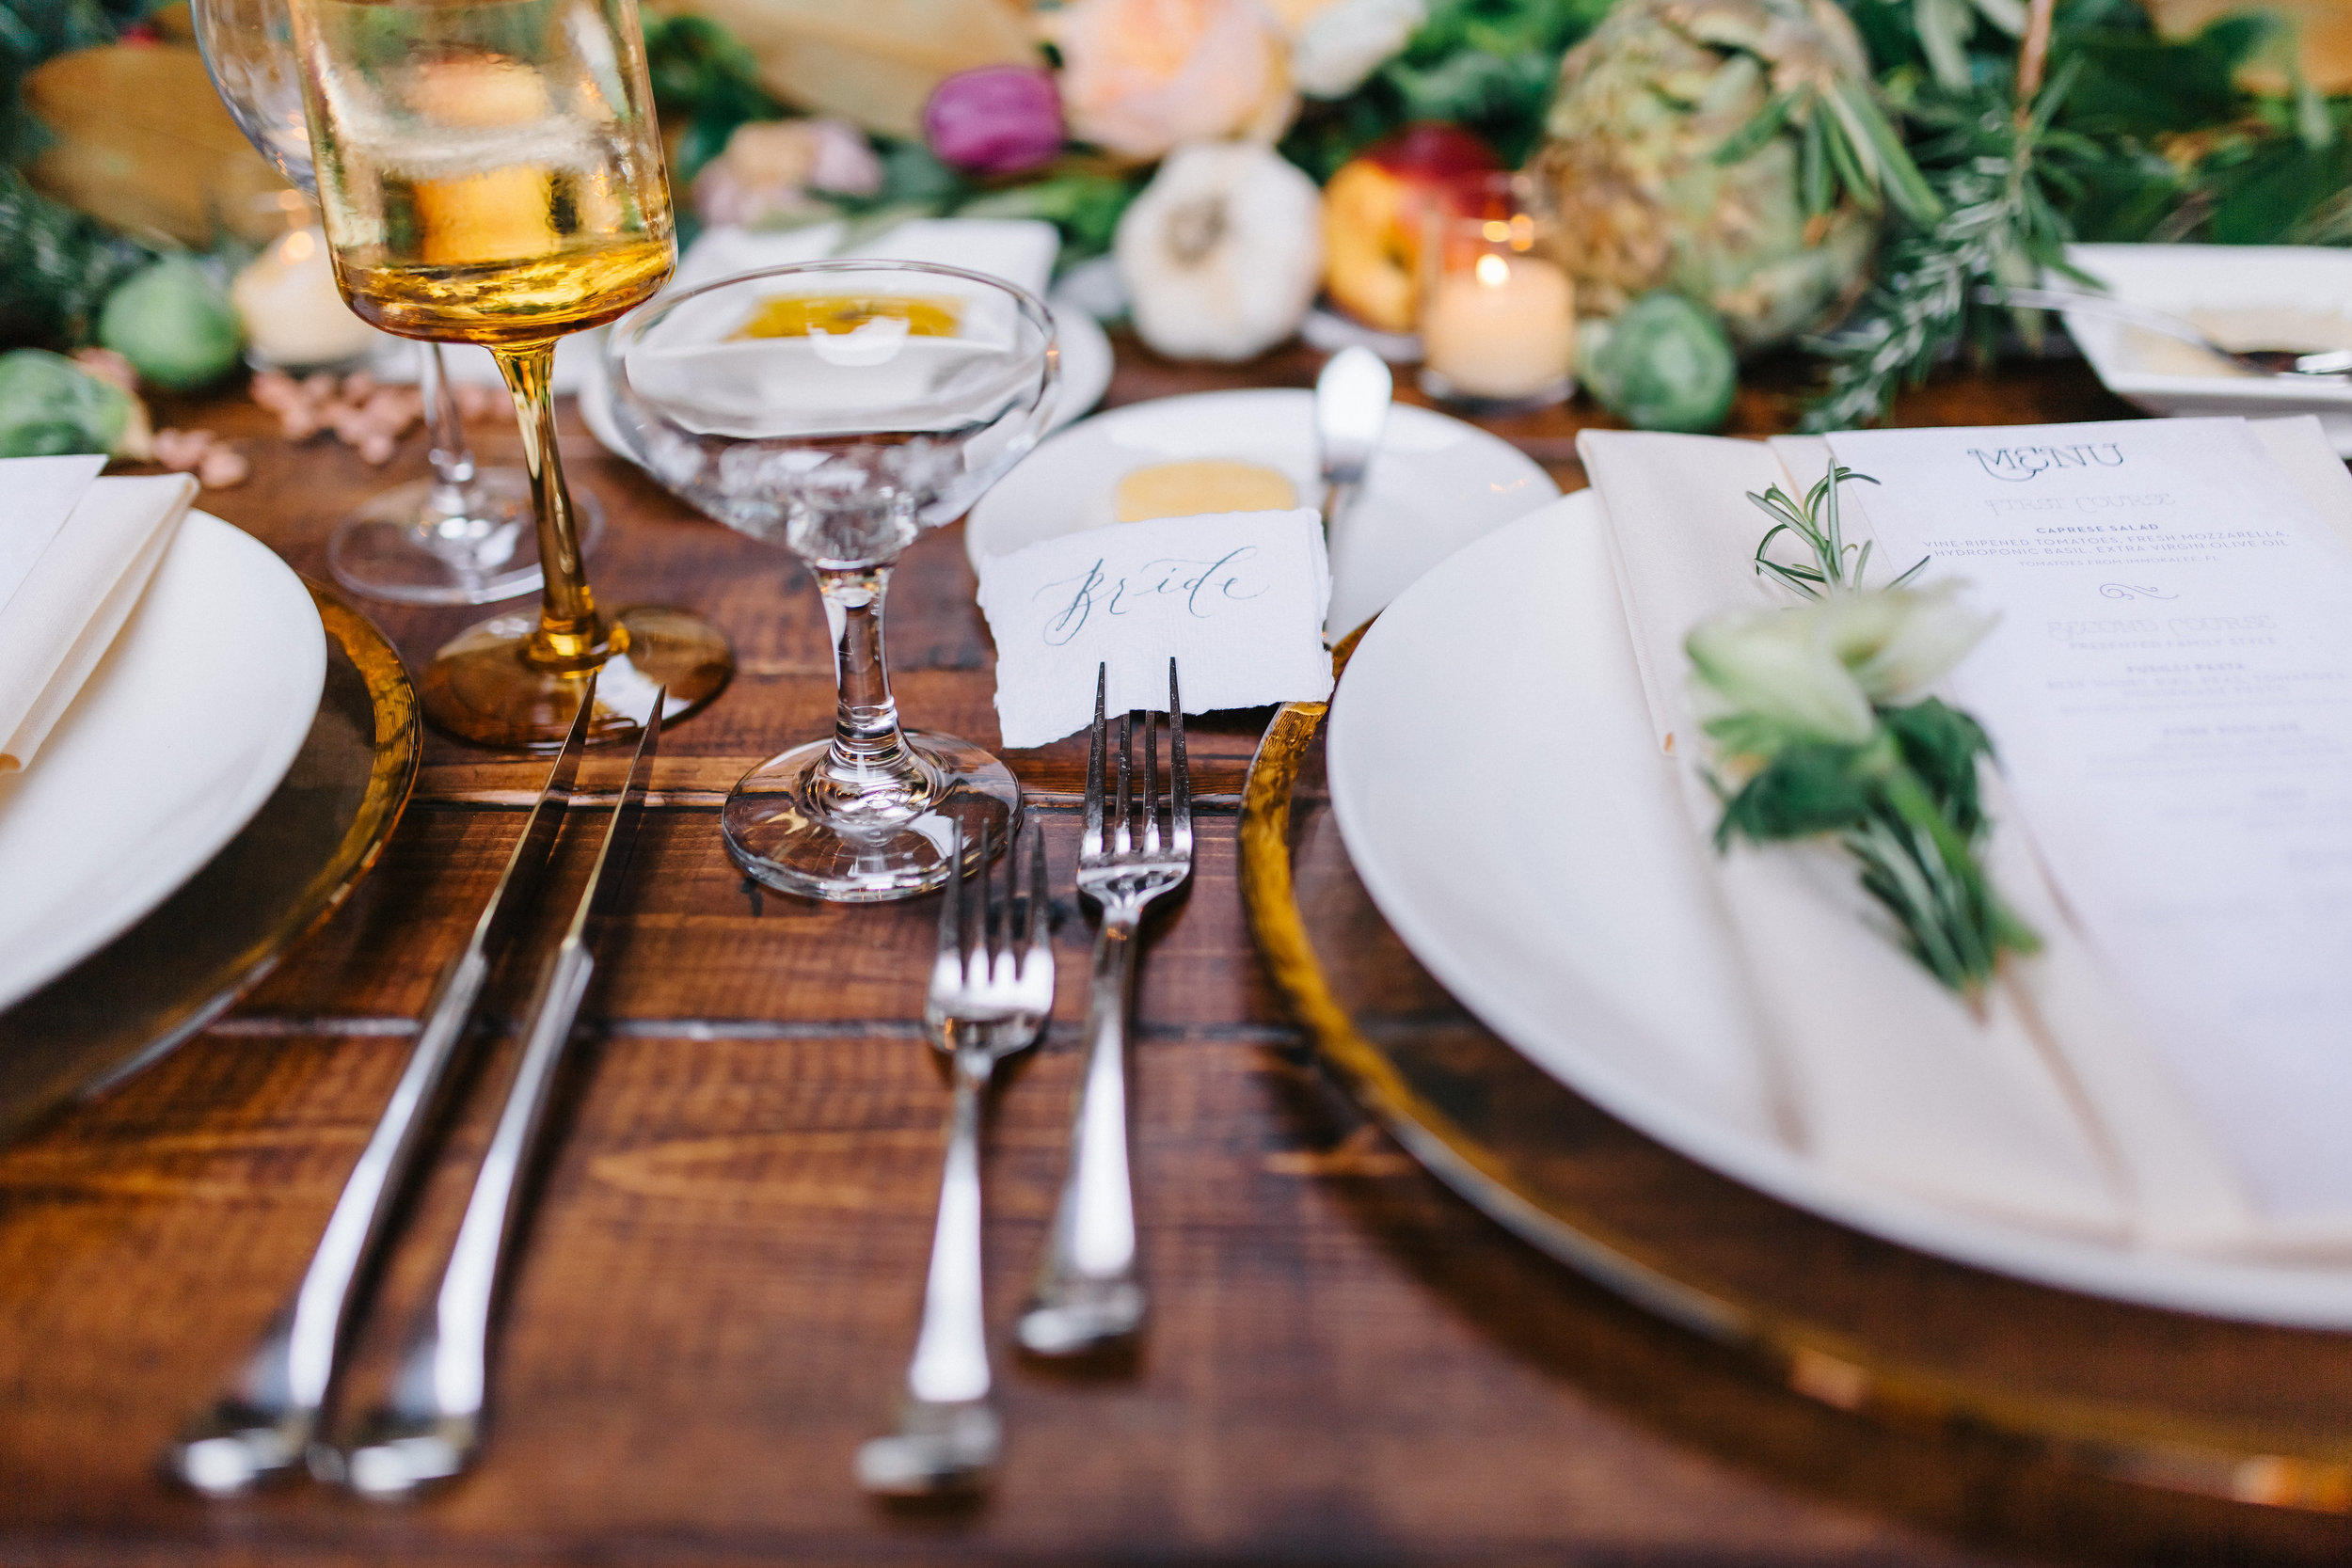 Candlelit tuscan inspired wedding reception with place cards  Orlando Wedding Planner Blue Ribbon Weddings  Orlando Wedding Photographer Emma Shourds Photography  Wedding Ceremony at Bell Tower at Bella Collina  Wedding Reception in Atrium at Bella Collina